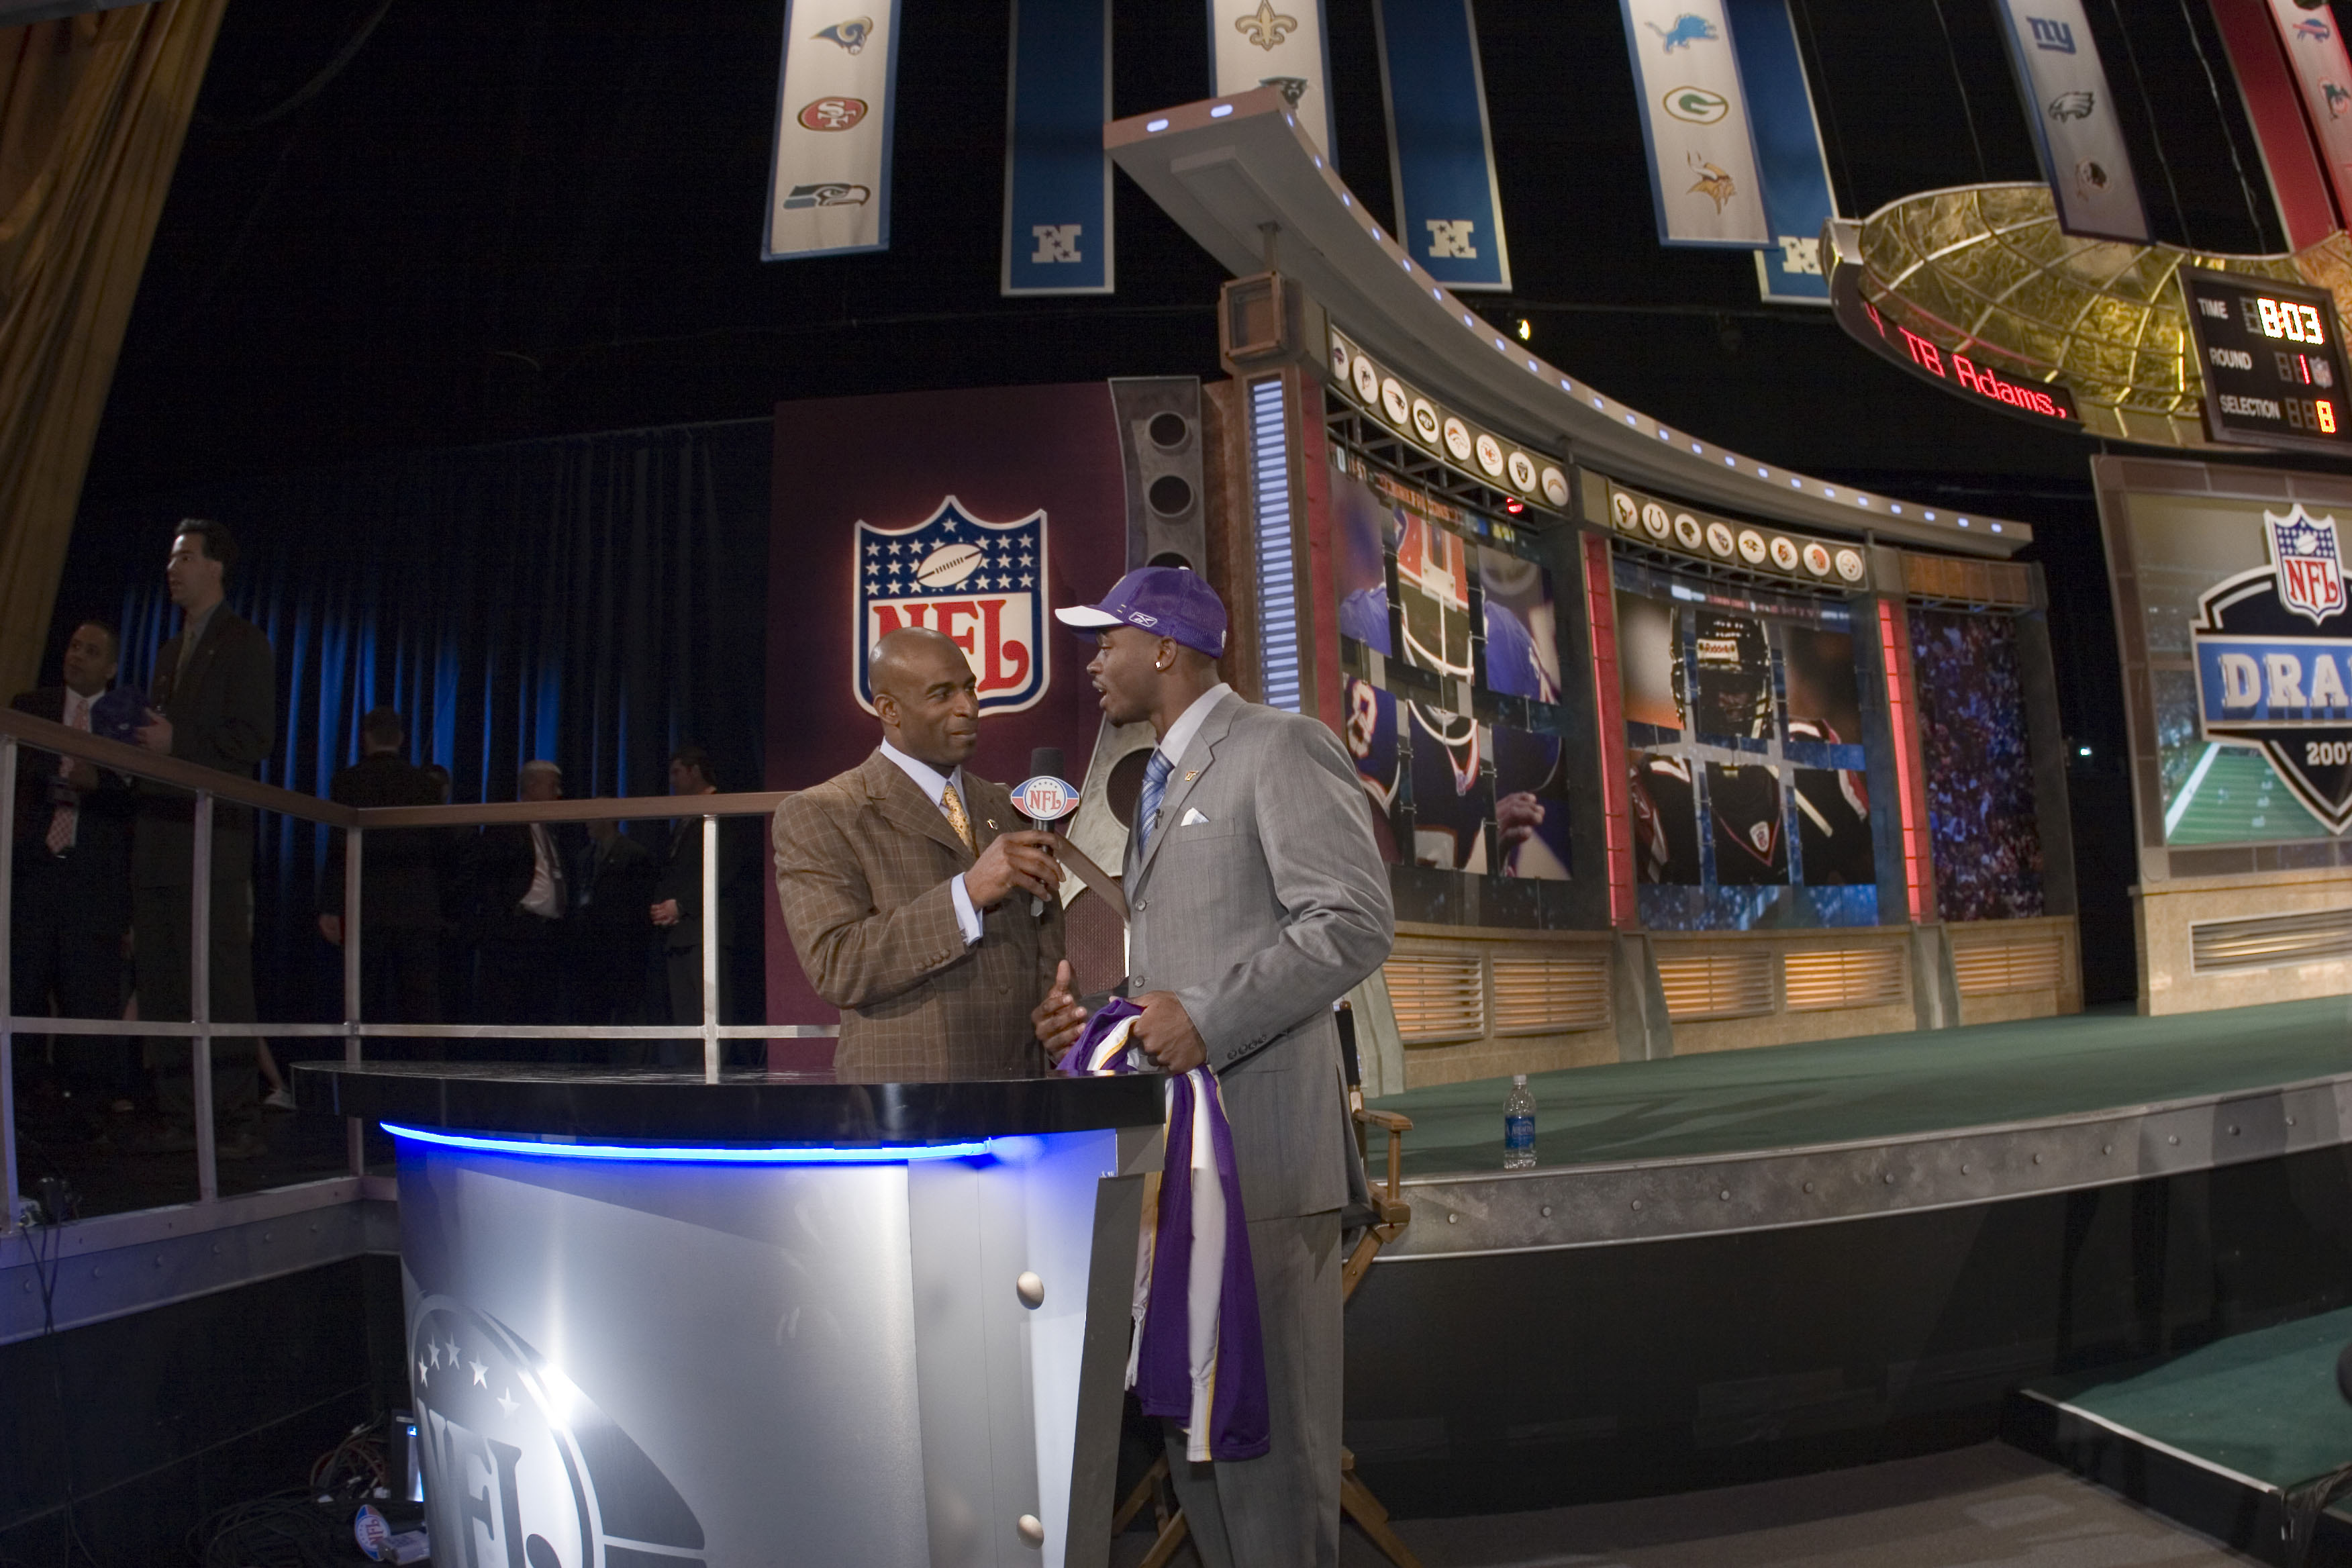 Adrian Peterson celebrates his selection by the Vikings at the 2007 NFL draft